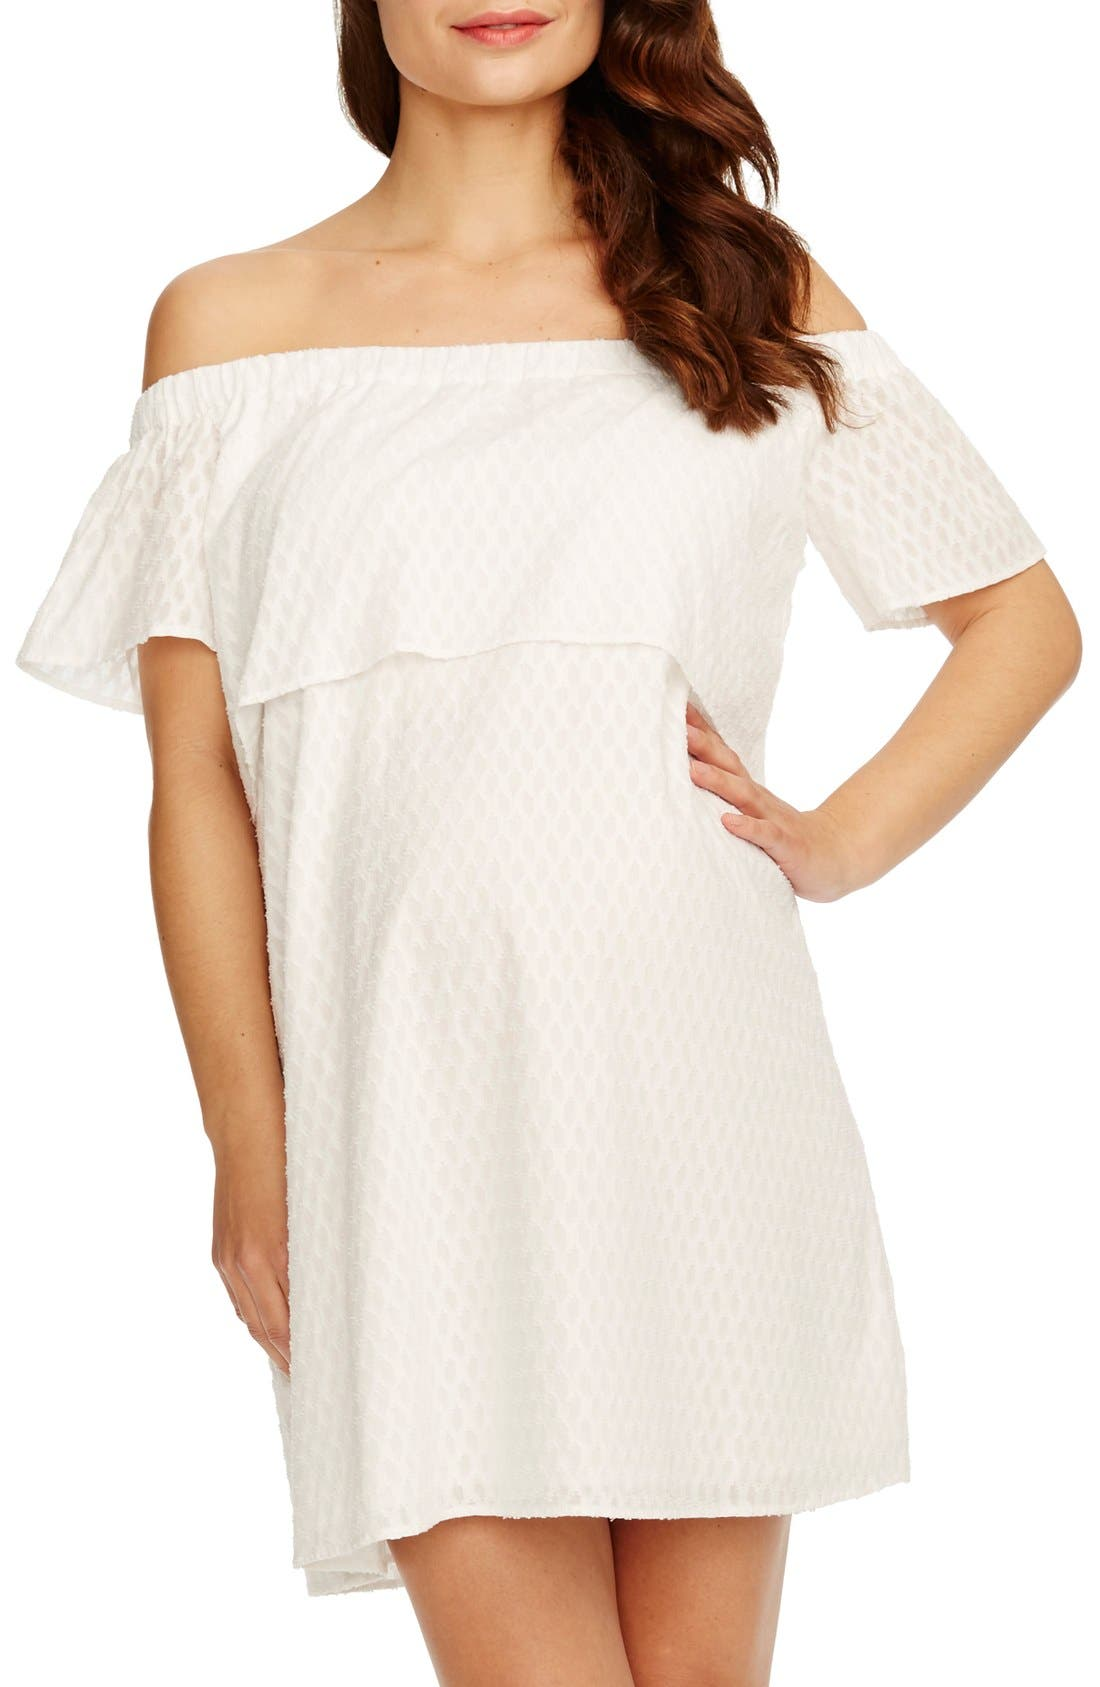 'Camille' Off the Shoulder Maternity Dress,                             Main thumbnail 1, color,                             White